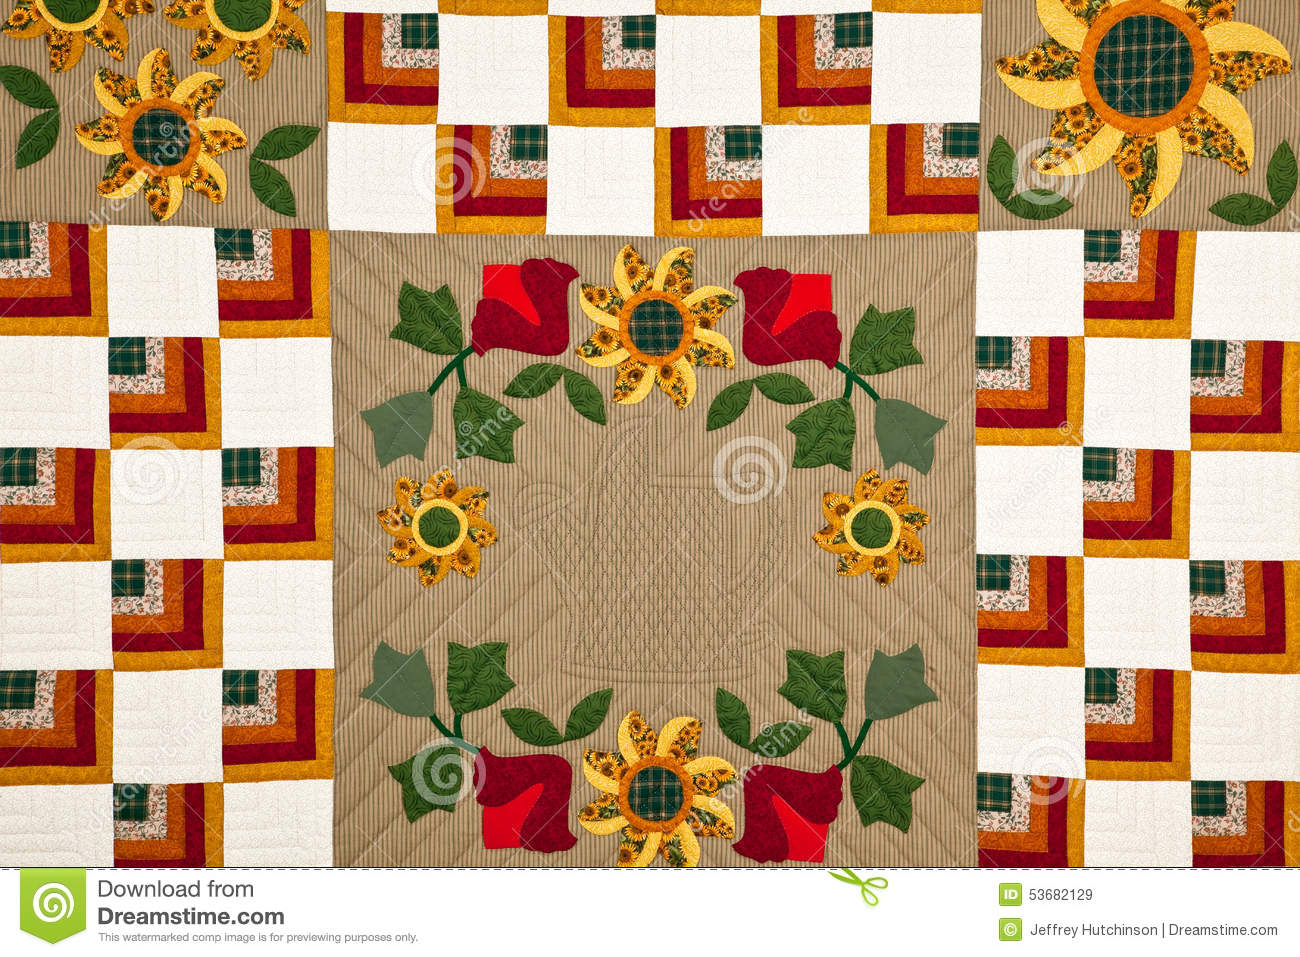 by on crazy the editorial arabian stock depositphotos quilt colorful swisshippo photo market